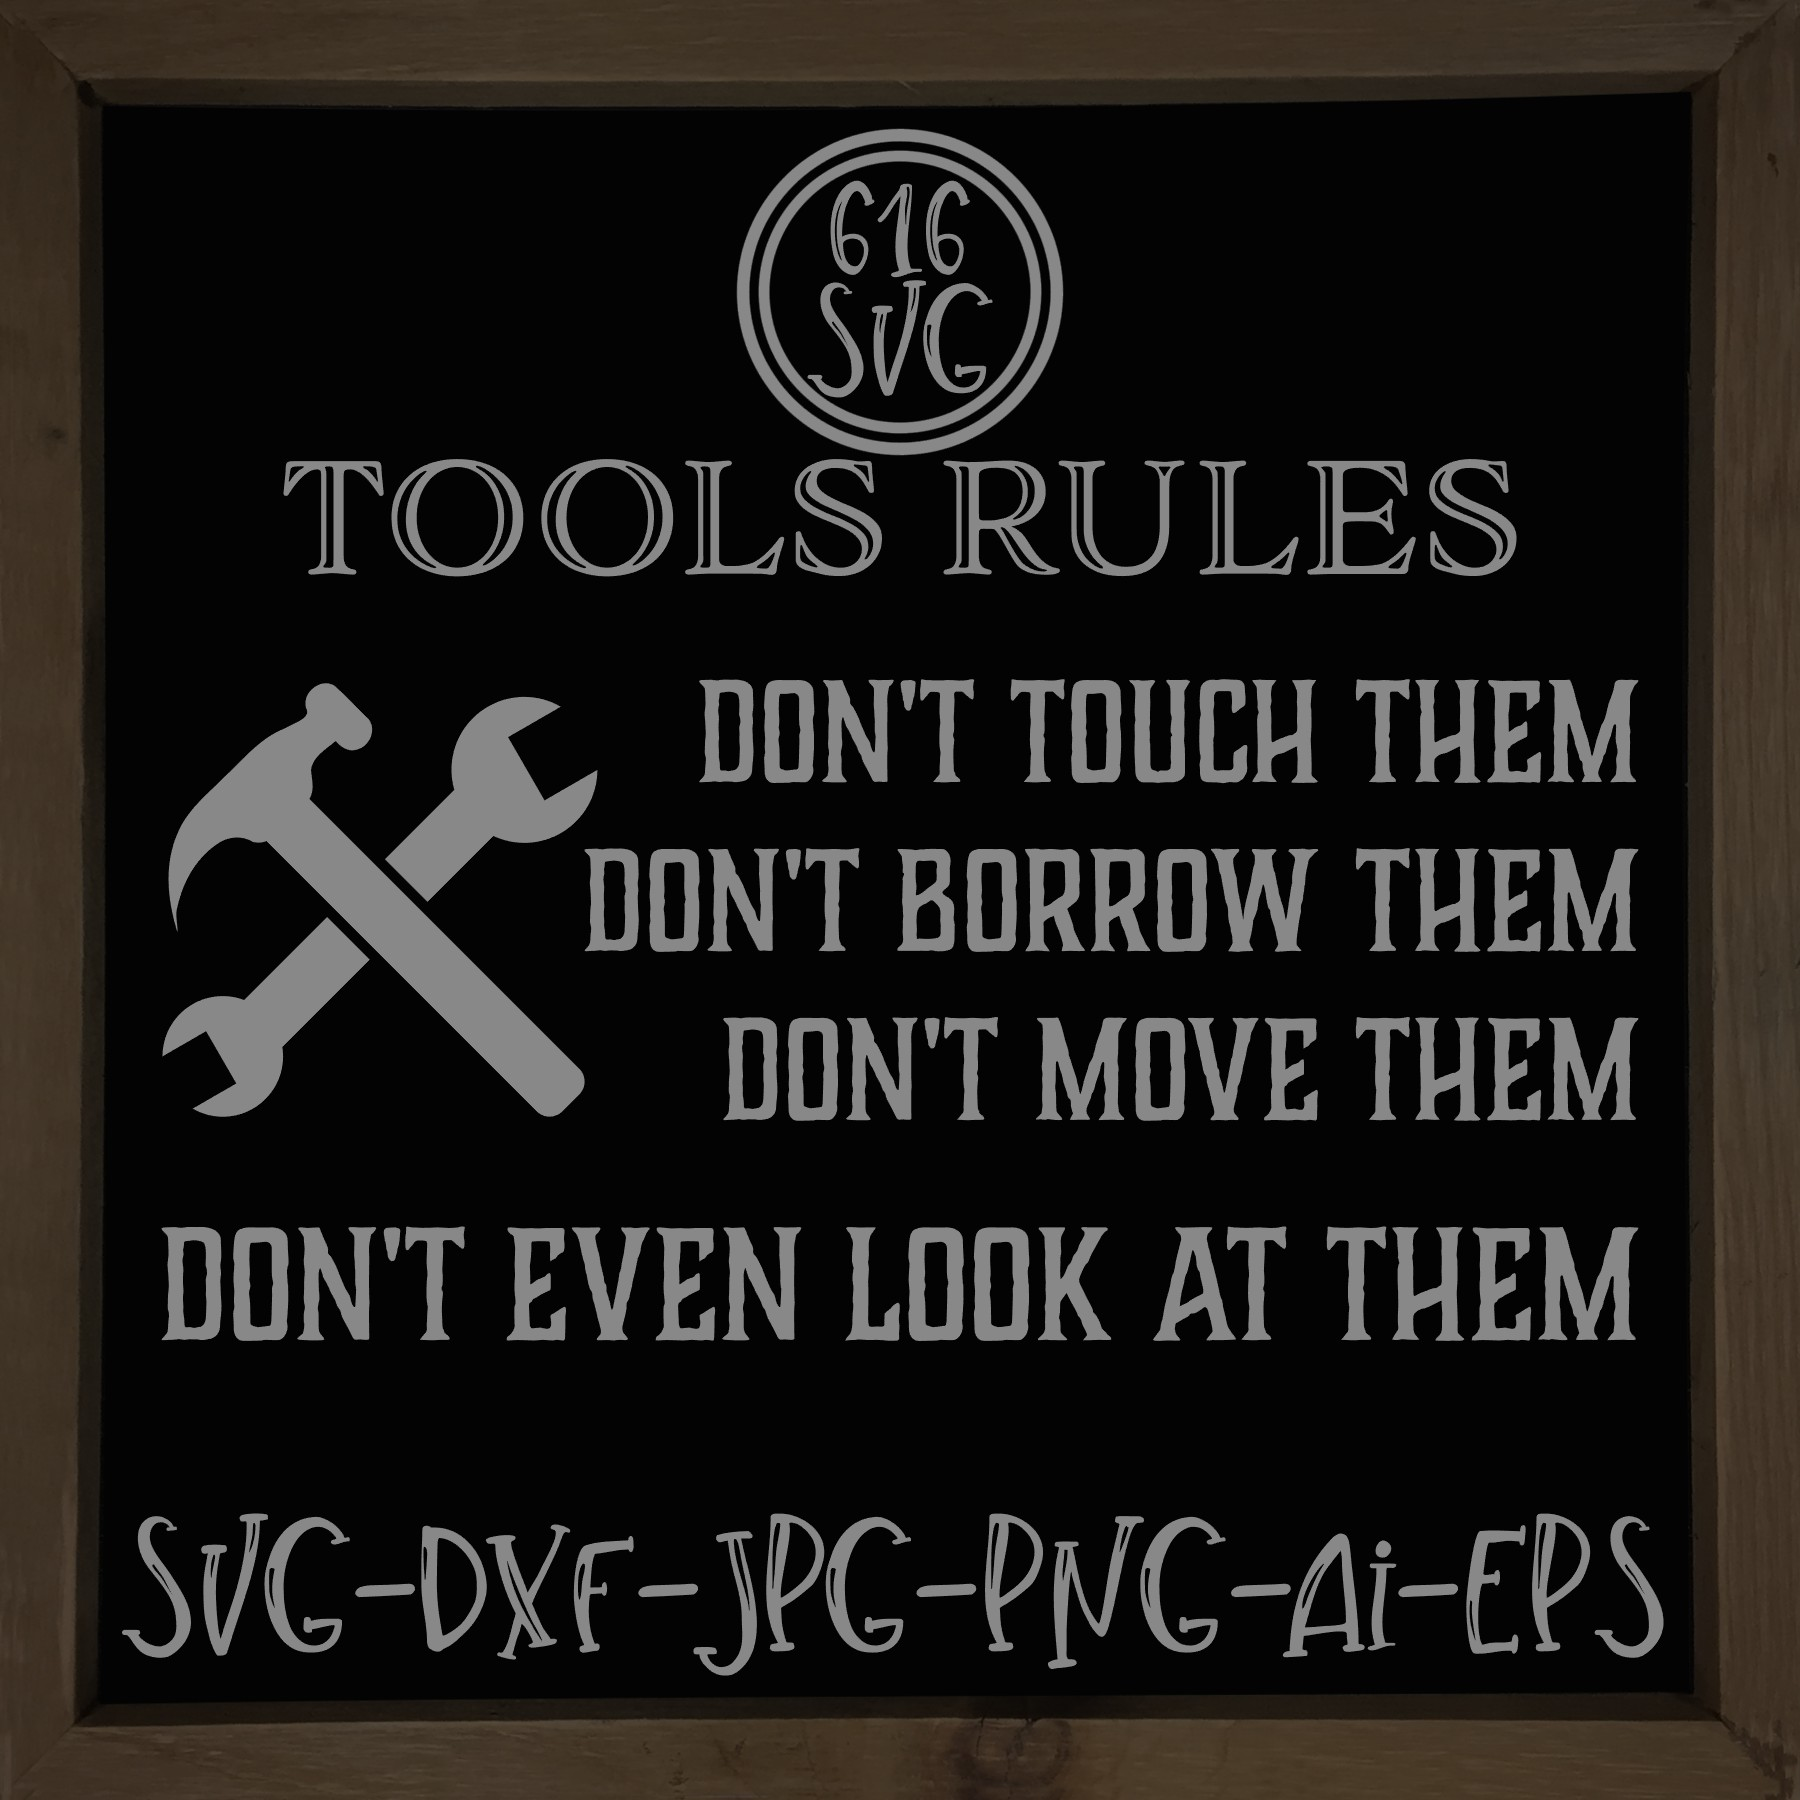 Tools Rules SVG, DXF, Ai, PNG example image 2